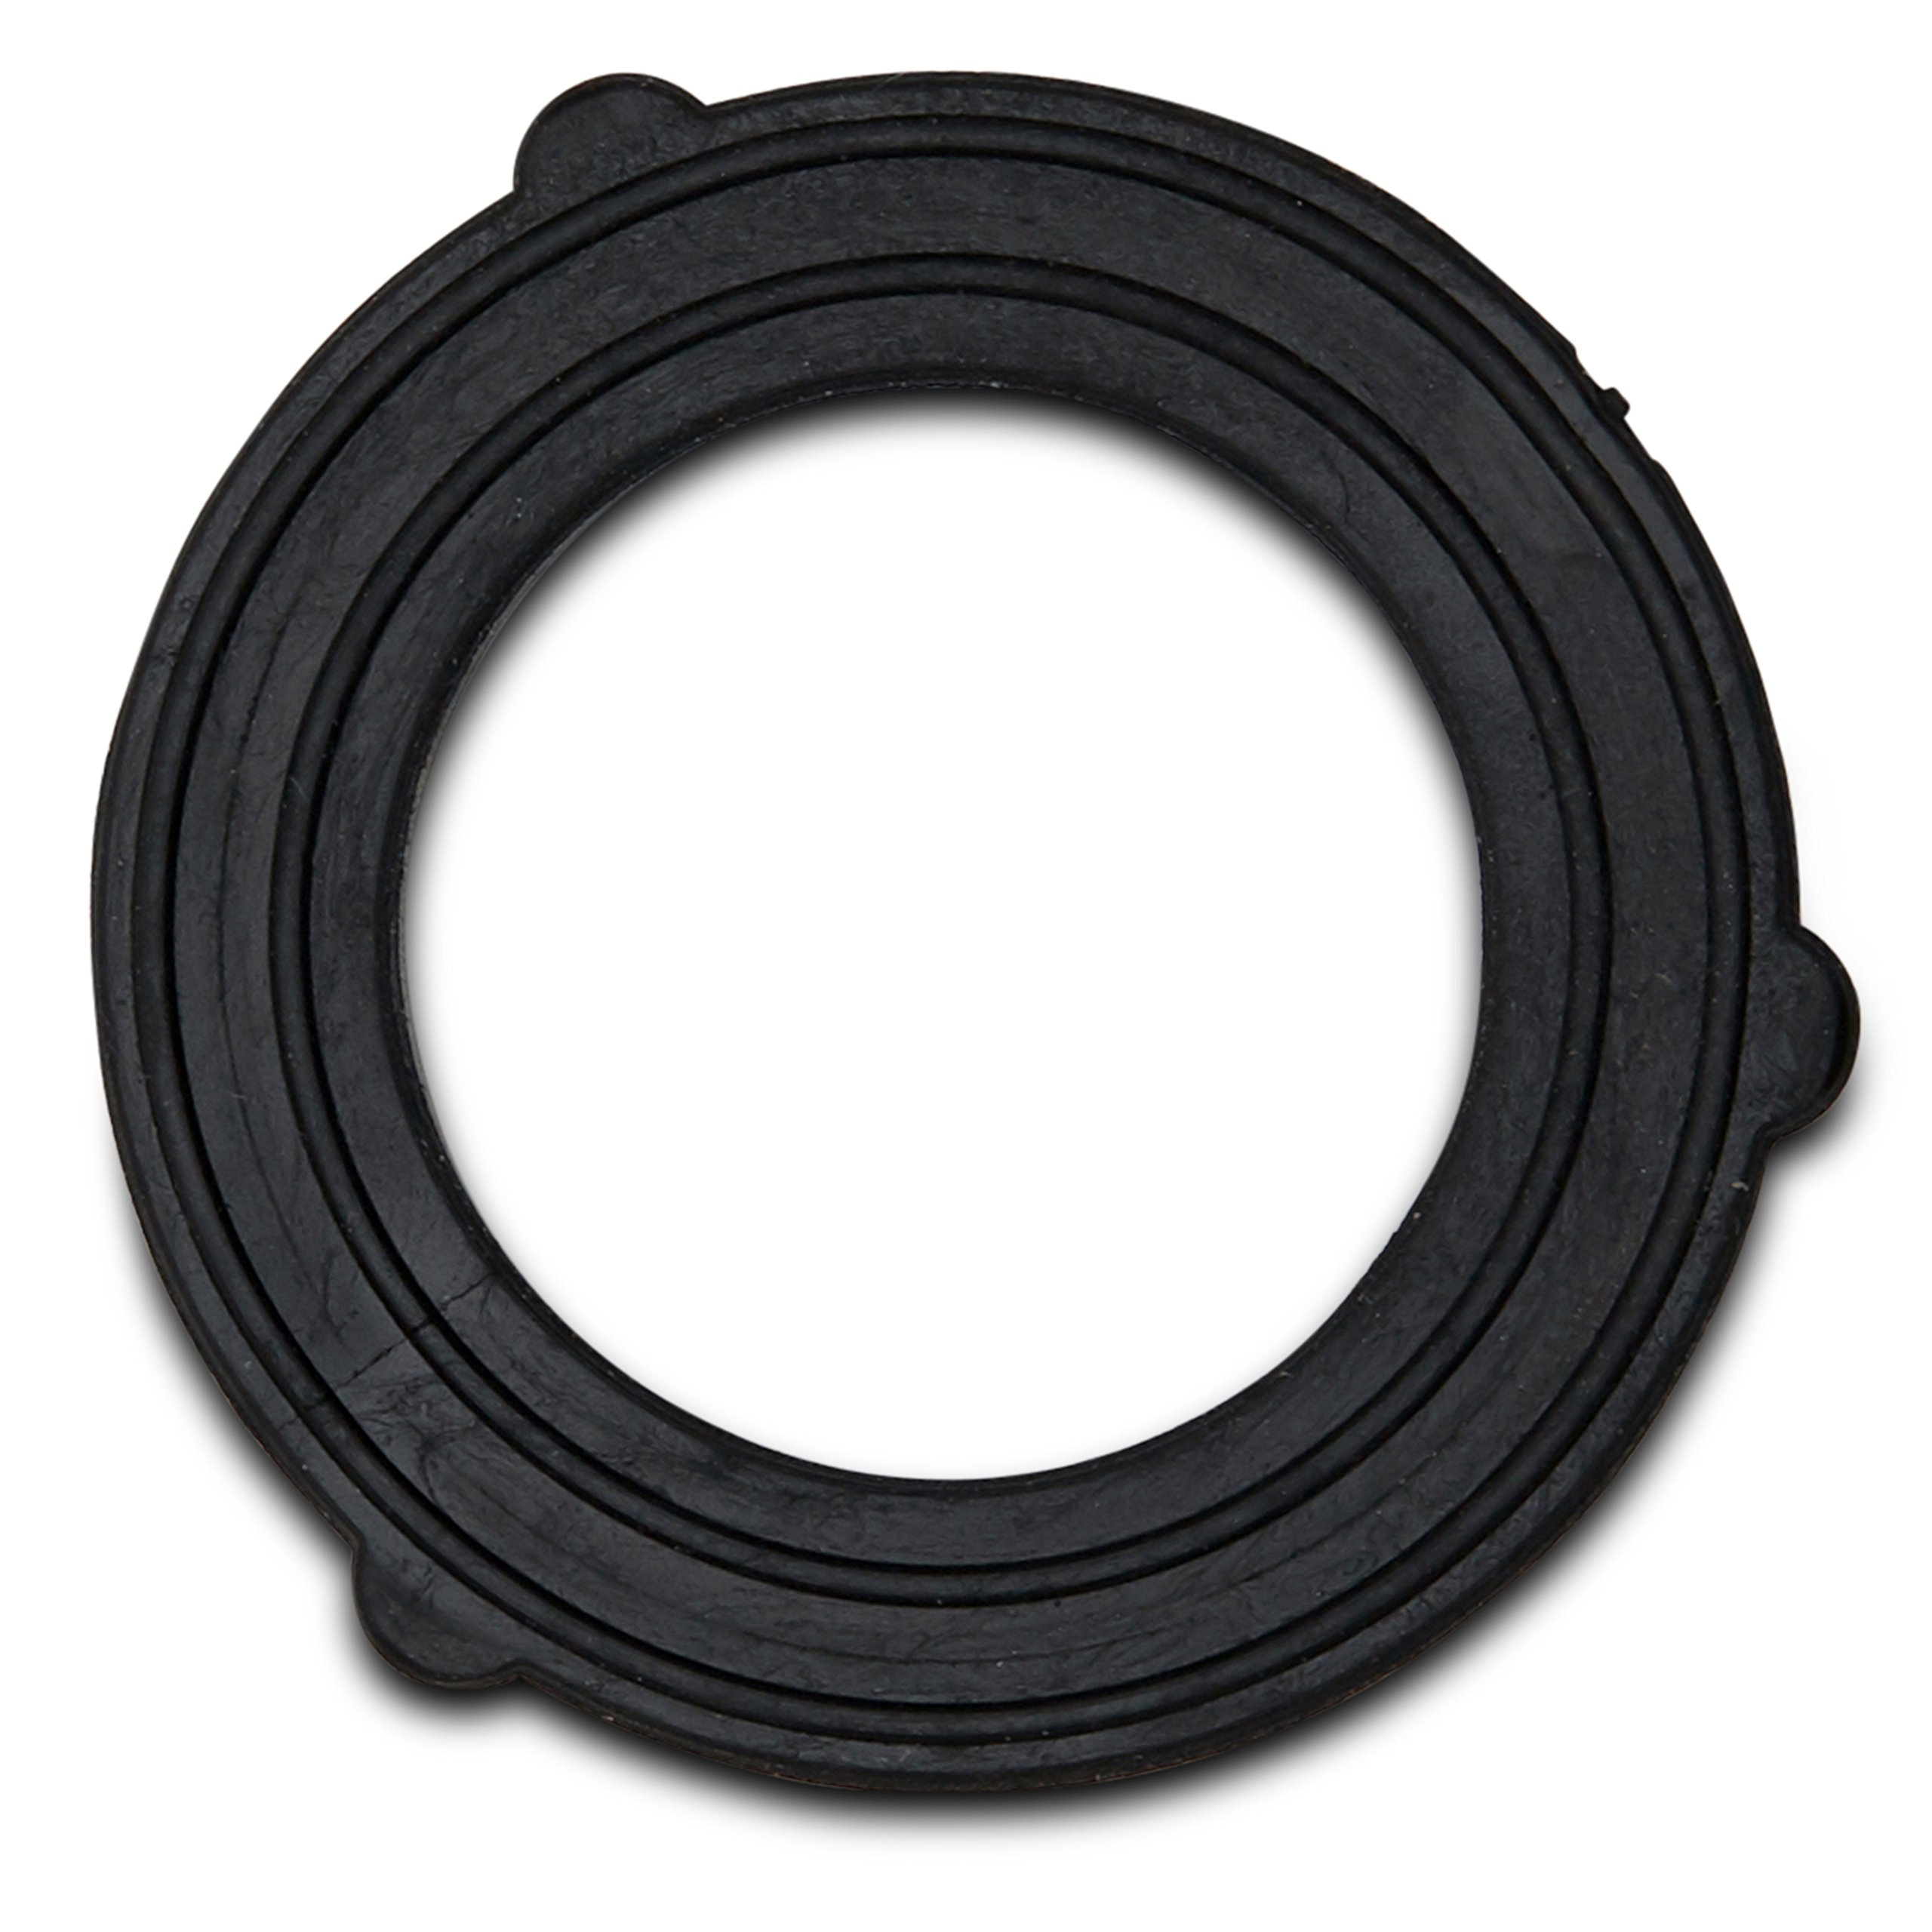 Morvat Heavy Duty Metal Garden Hose Connector Splitter with Rubber Grip Coating (2 Way Y Connector)   Water Hose Diverter, Adapter   Includes 4 Rubber Washers   Pack of 2 by Morvat (Image #4)